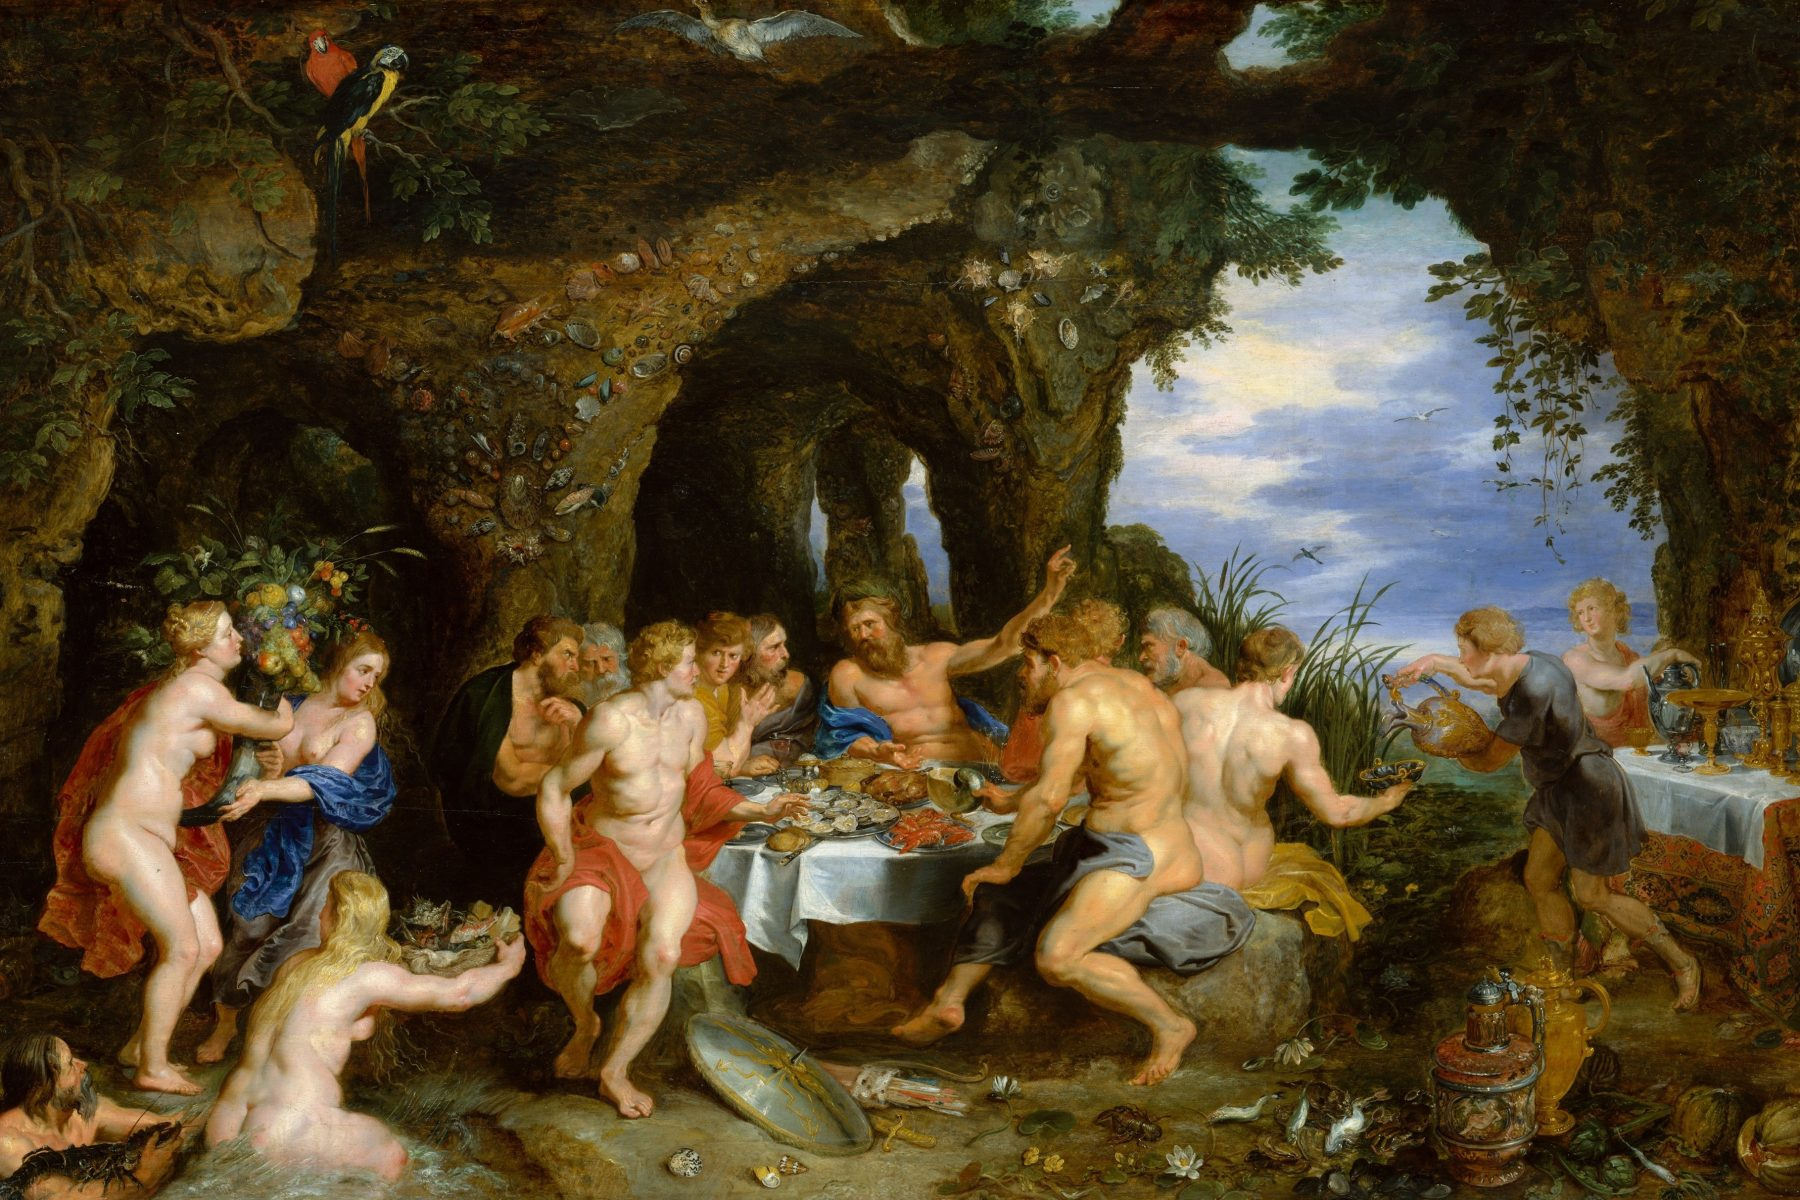 The Feast of Achelous by Peter Paul Rubens, circa 1615